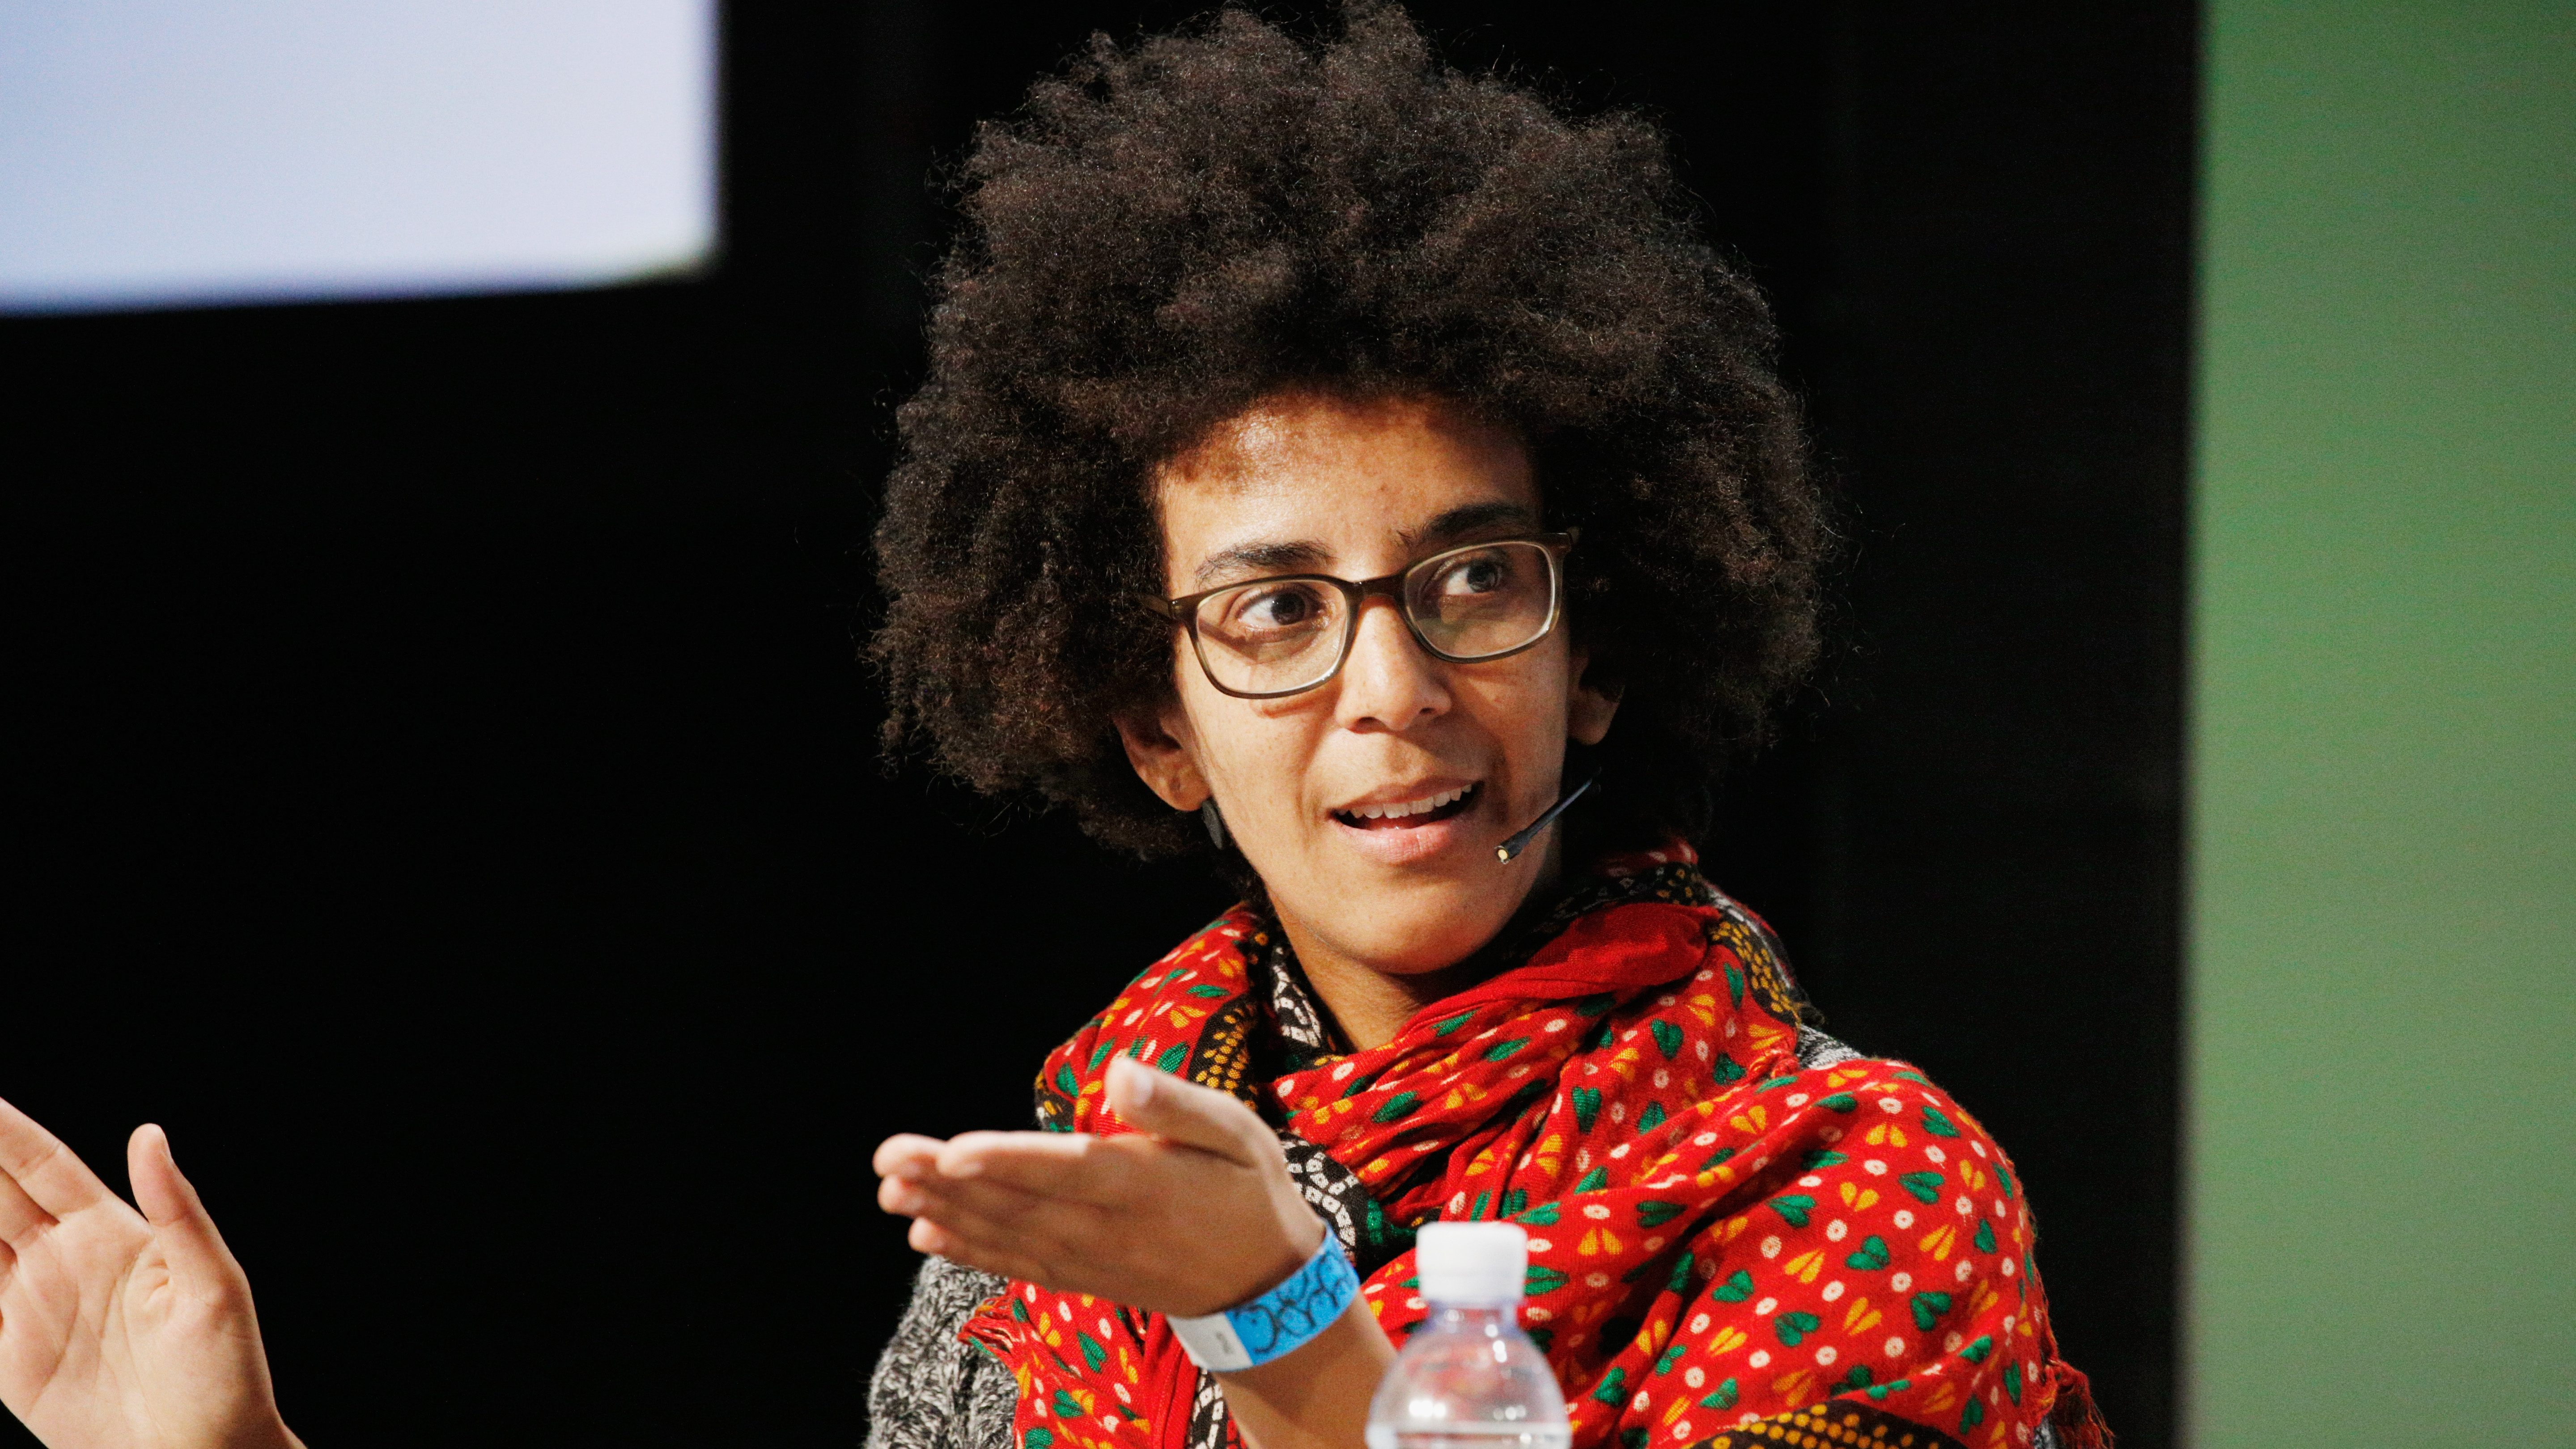 A leading AI ethics researcher says she's been fired from Google   MIT Technology Review